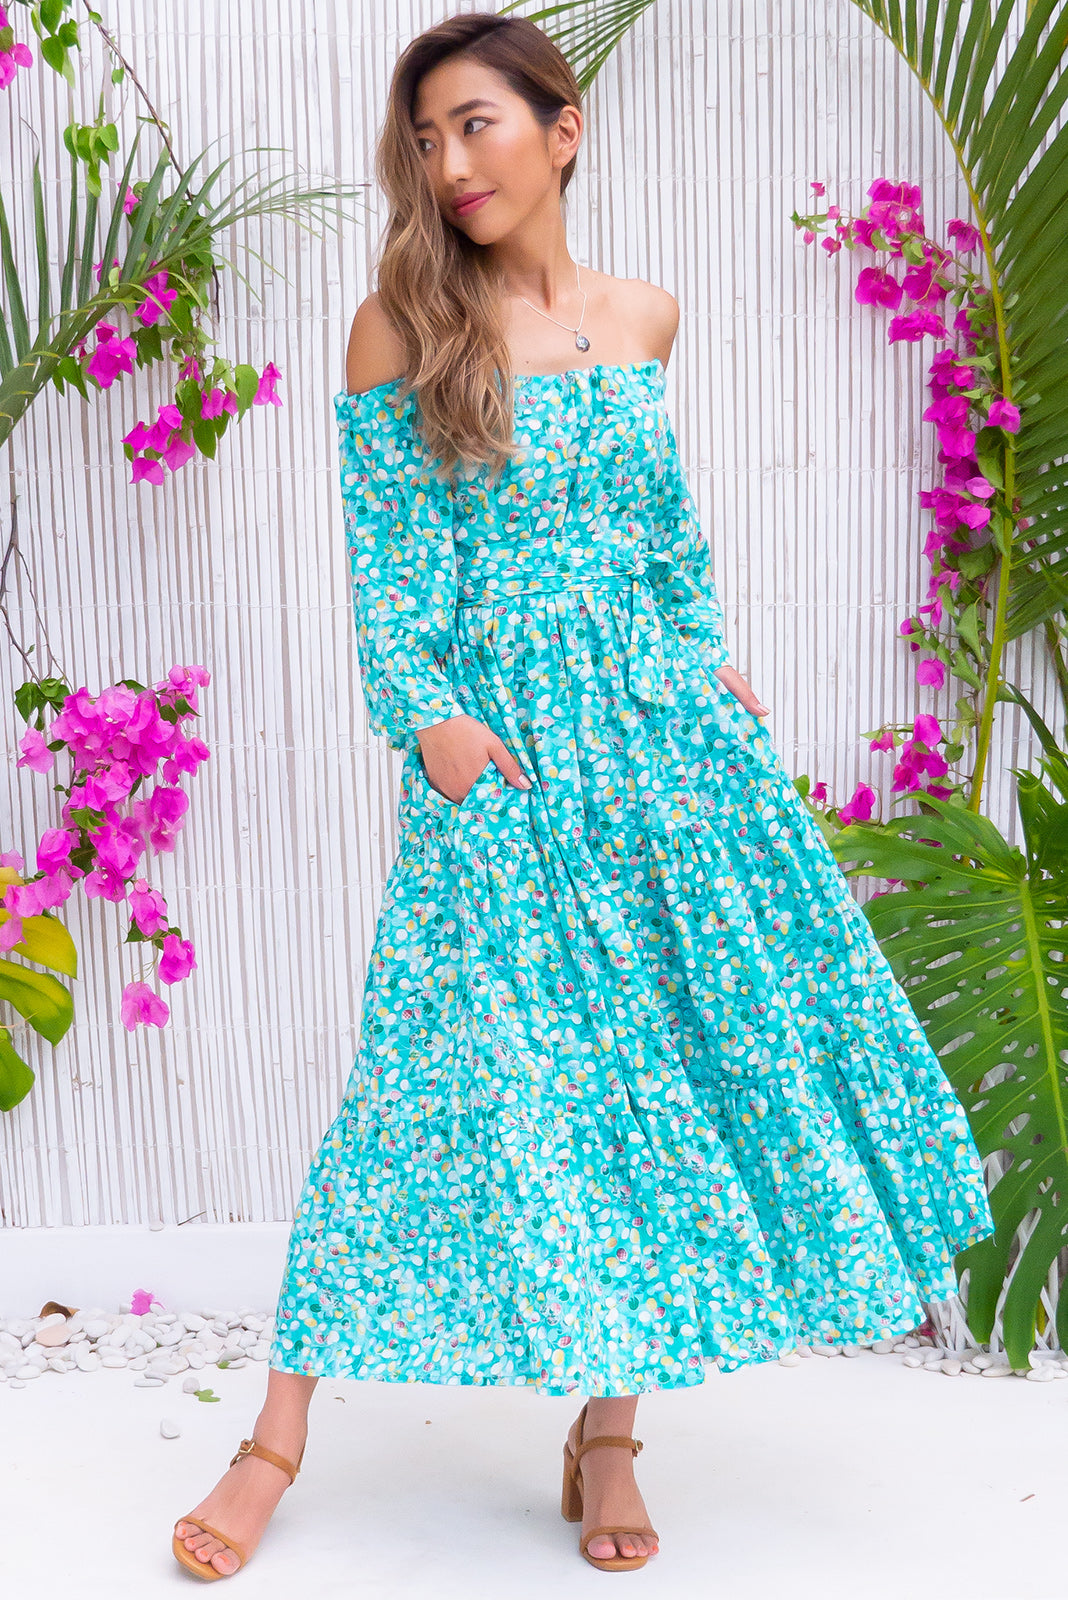 Lulu Liberty Sea Grapes Maxi Swing Dress will keep you cool in the woven 100% Cotton fabric featuring drawstring tie to adjust neckline, side pockets, fresh aqua/teal tones fabric scattered with pale mint, yellow and dark green and fabric belt included.